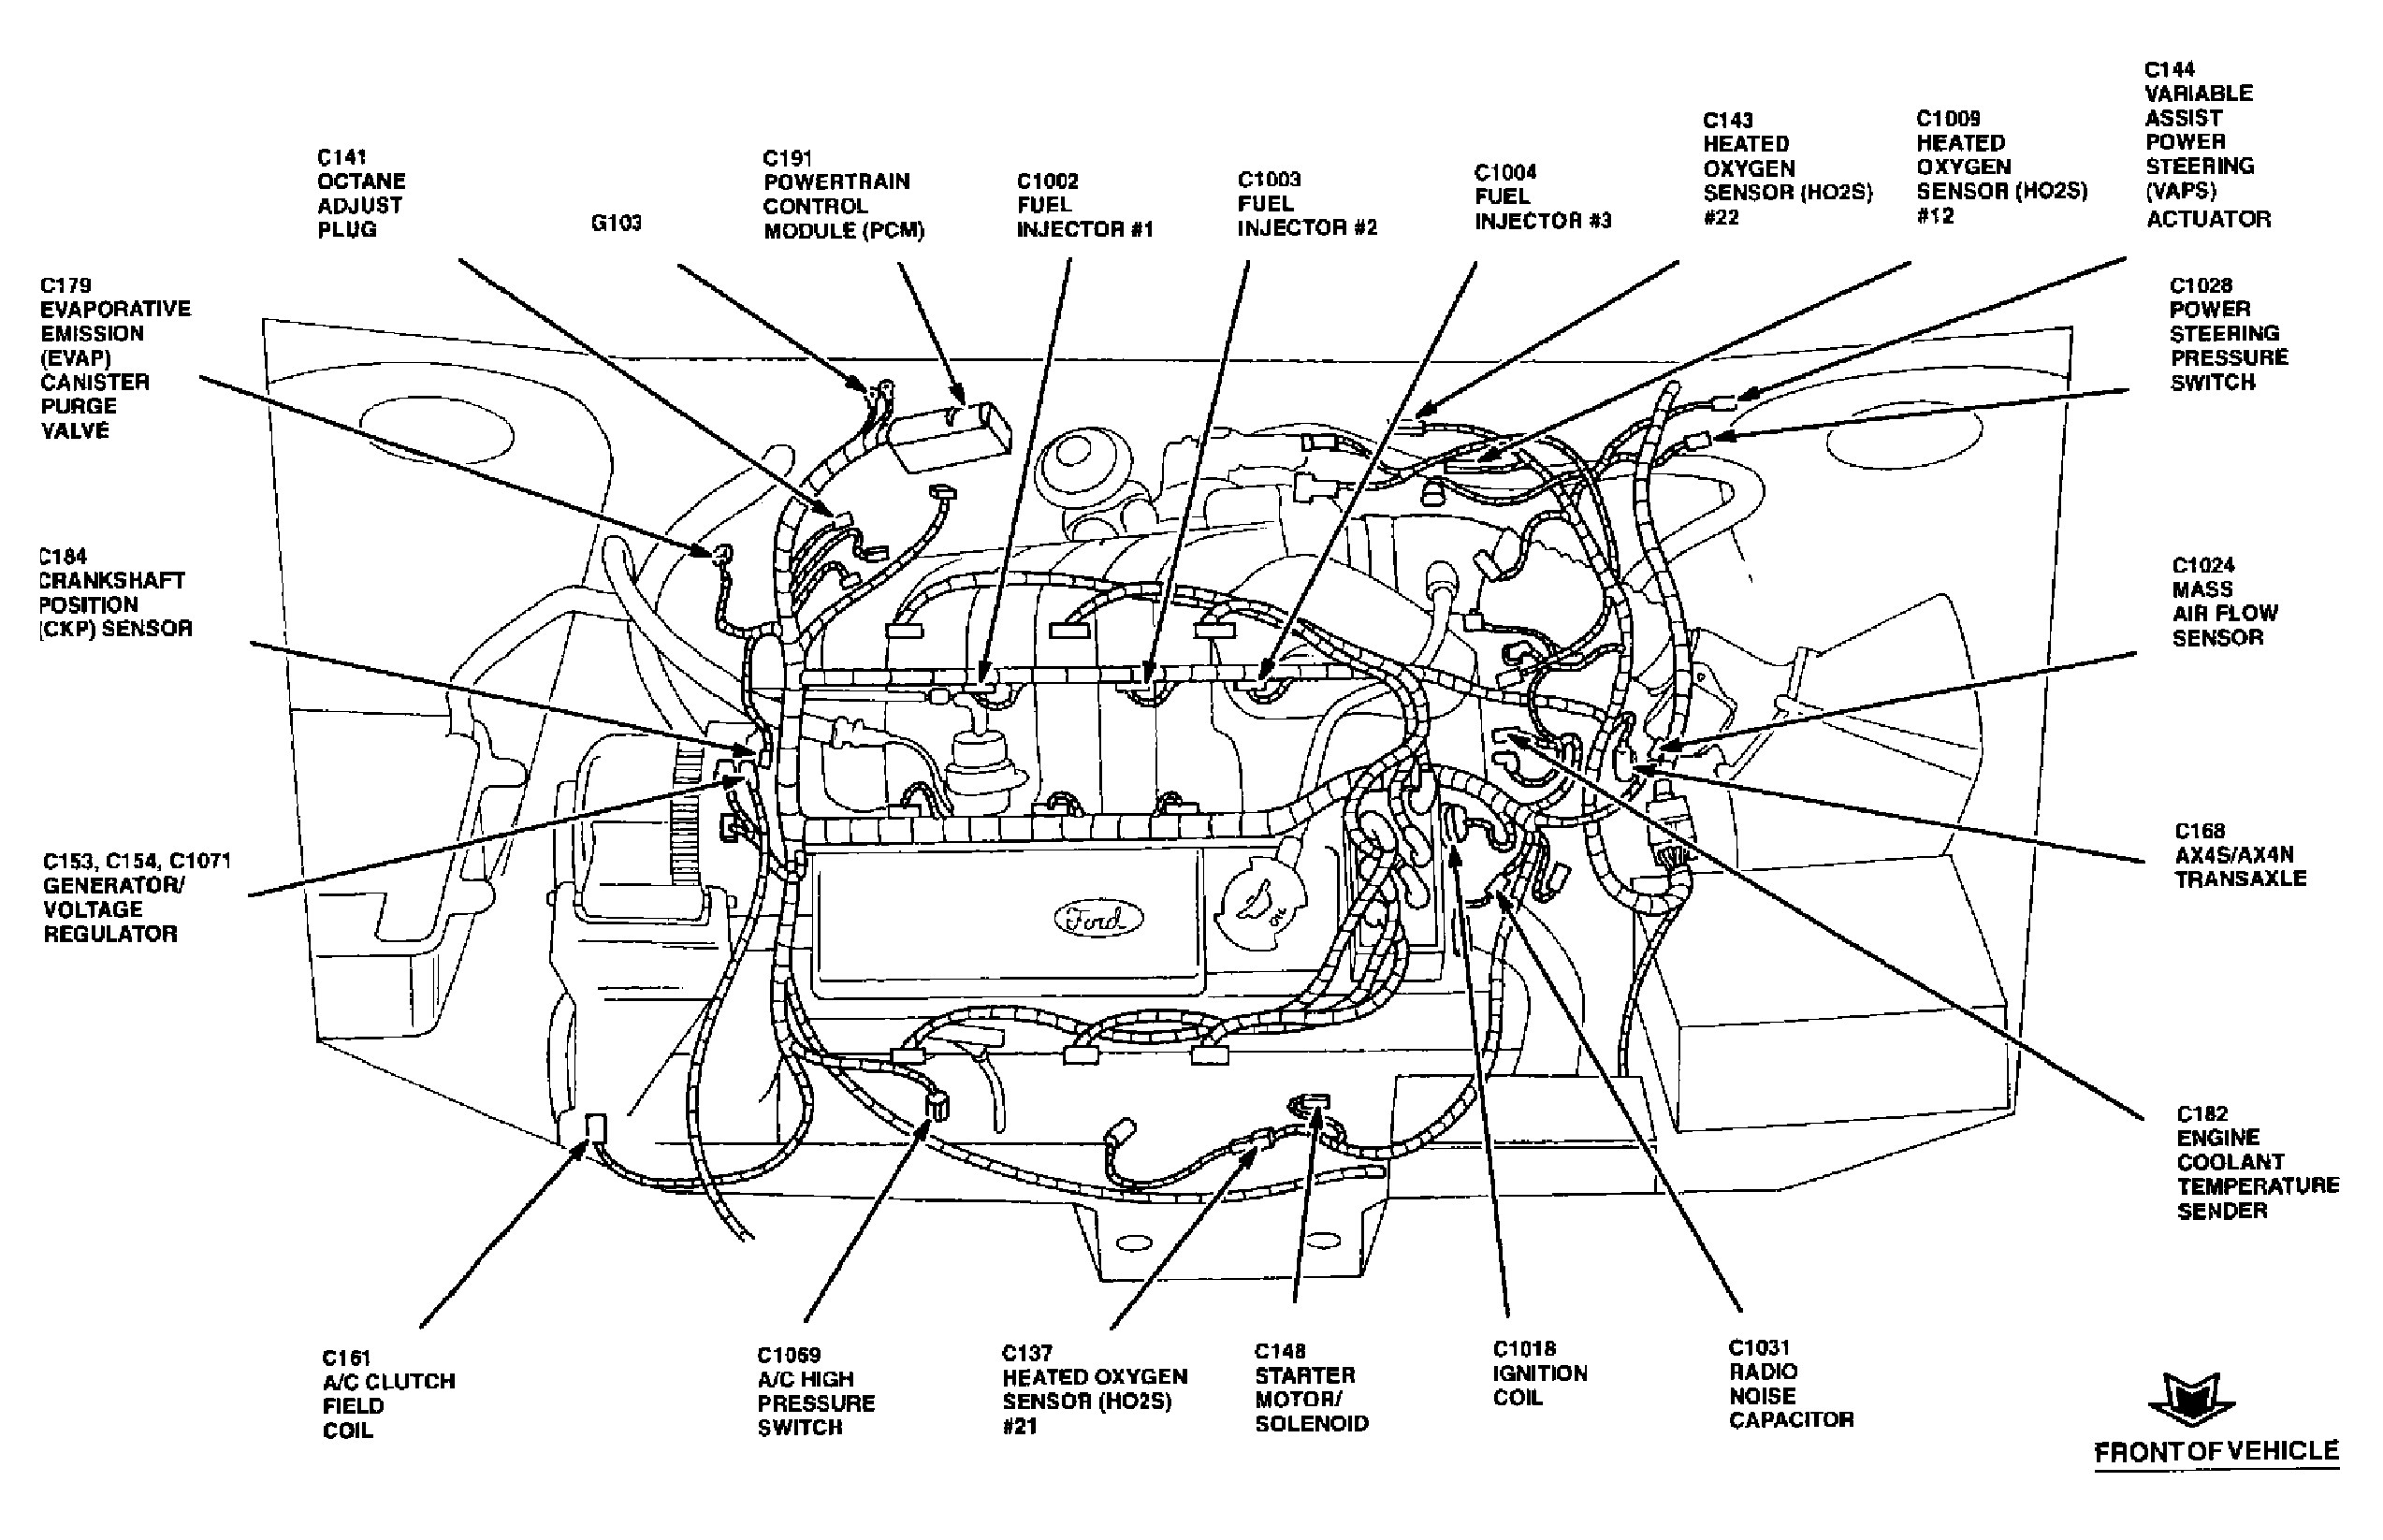 2002 Impala Ignition Switch Wiring Diagram from static-resources.imageservice.cloud